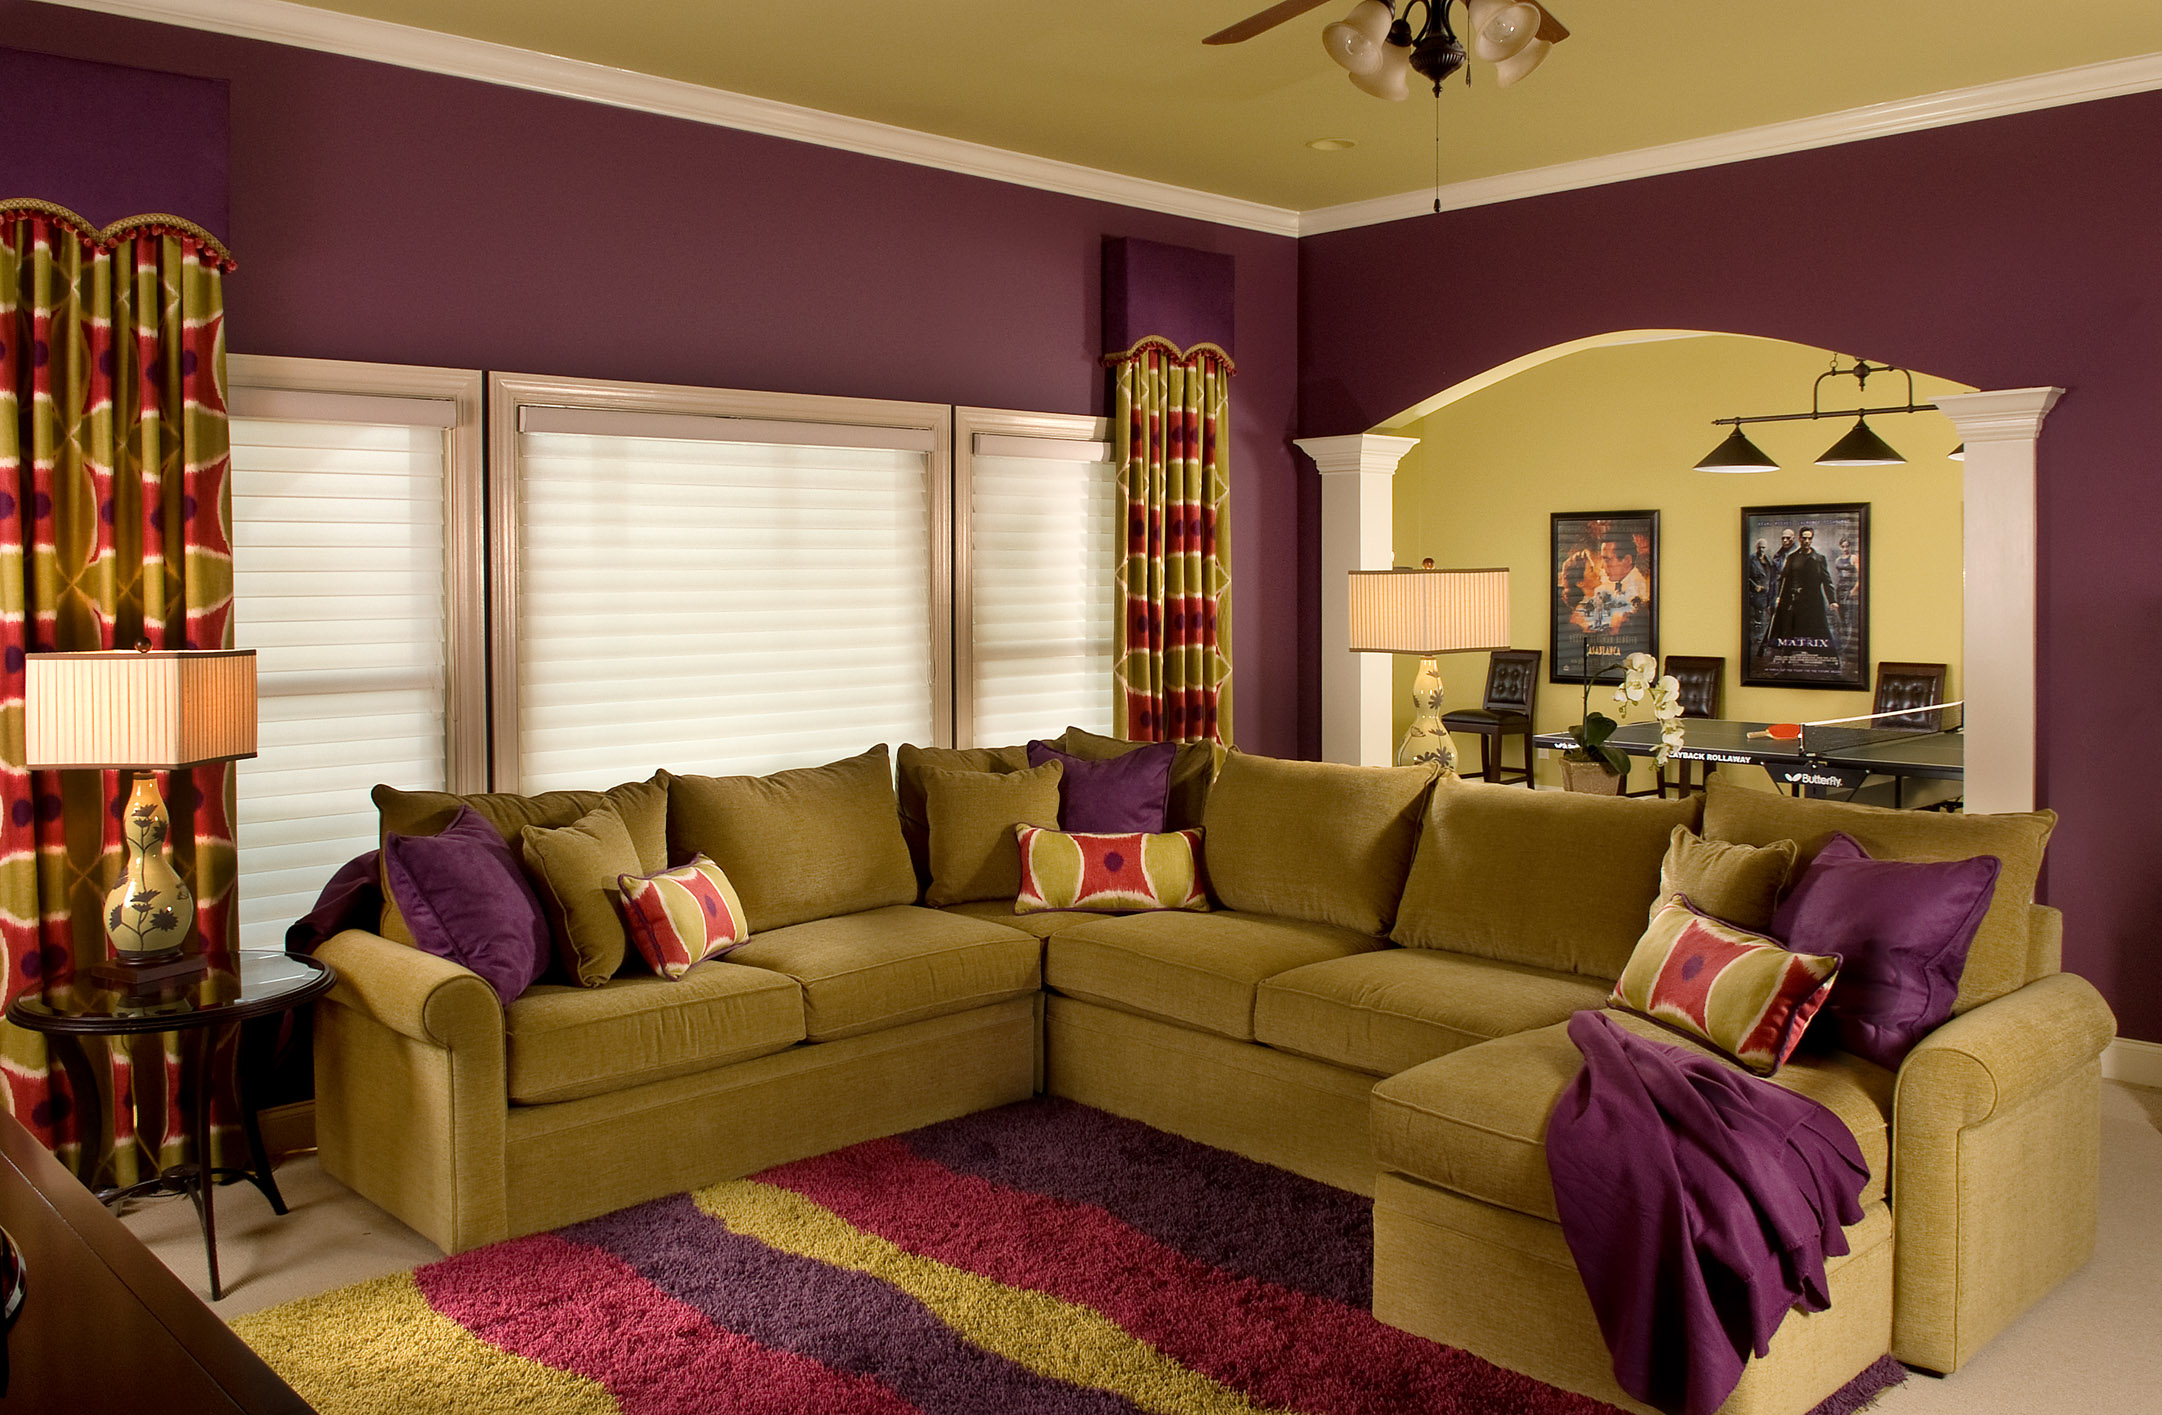 Living Room Wall Color Schemes 2162 x 1415